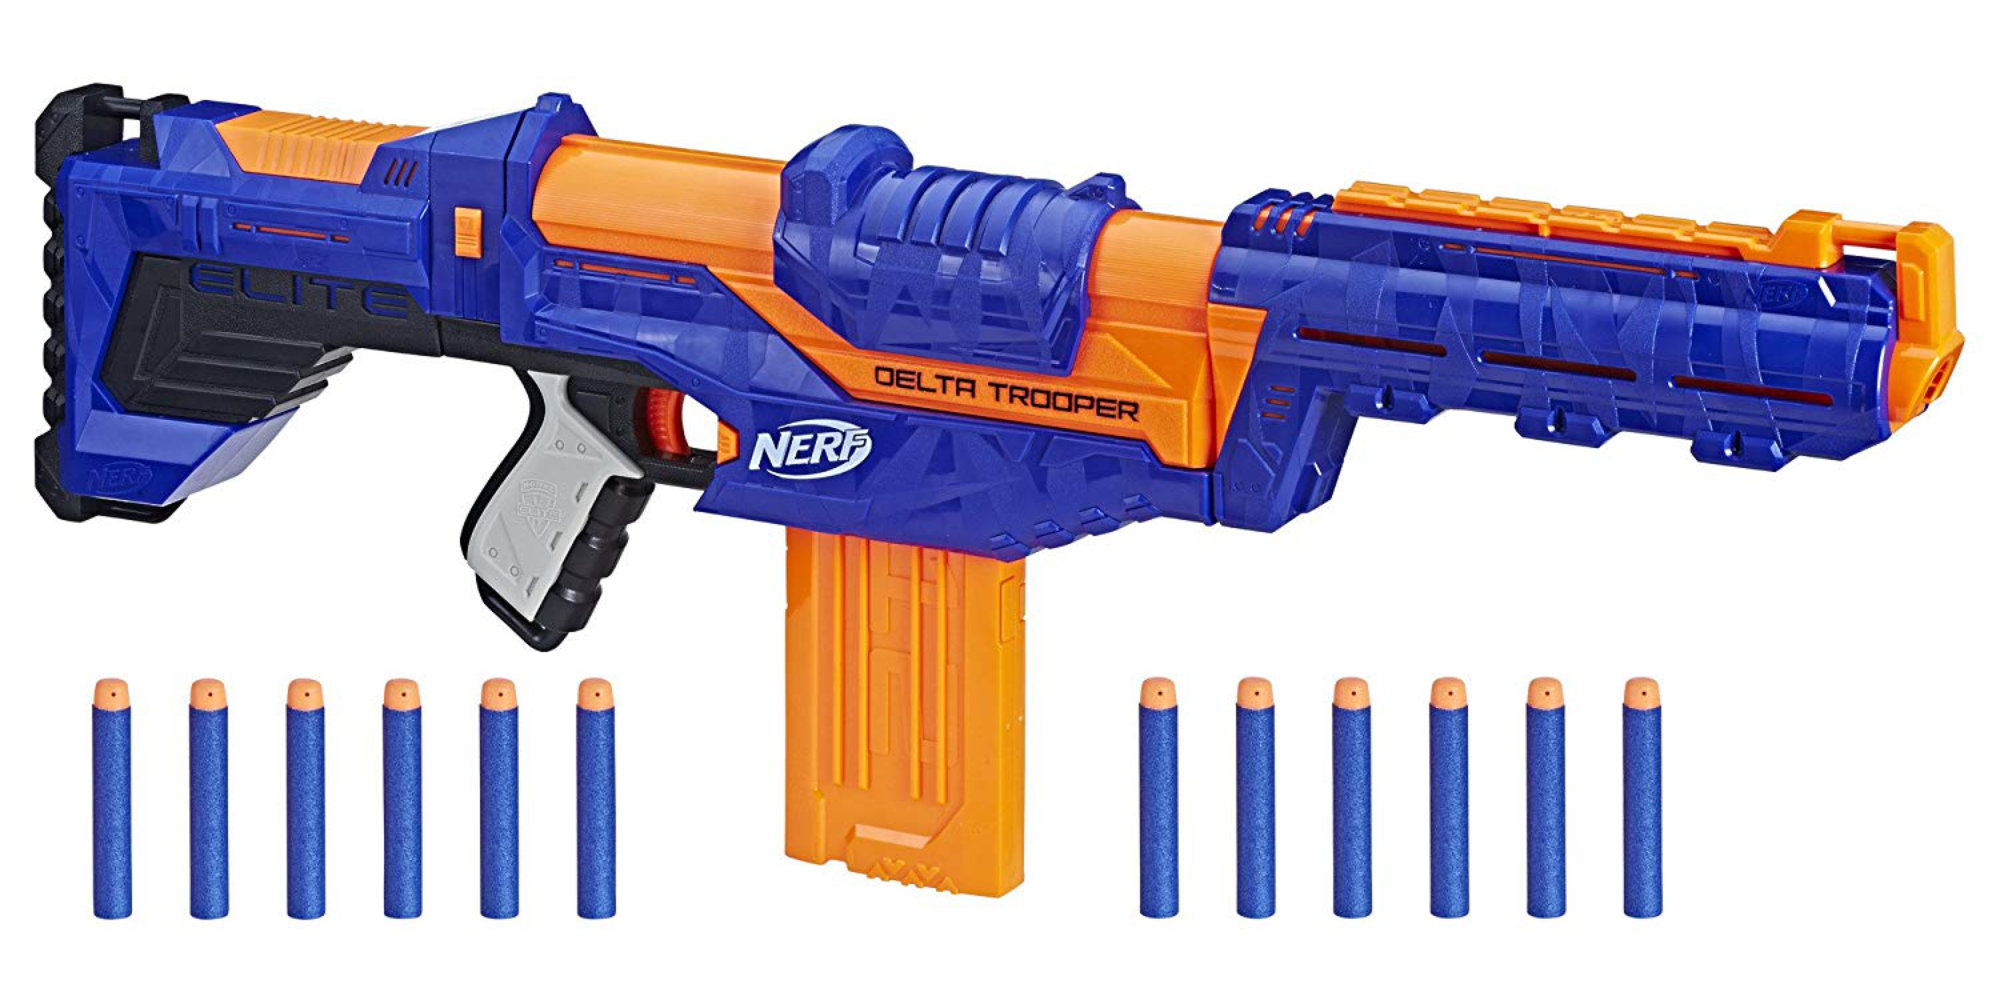 Nerf's N-Strike Elite Delta Trooper shoots darts up to 90 feet: $20 at Amazon (Save 30%)